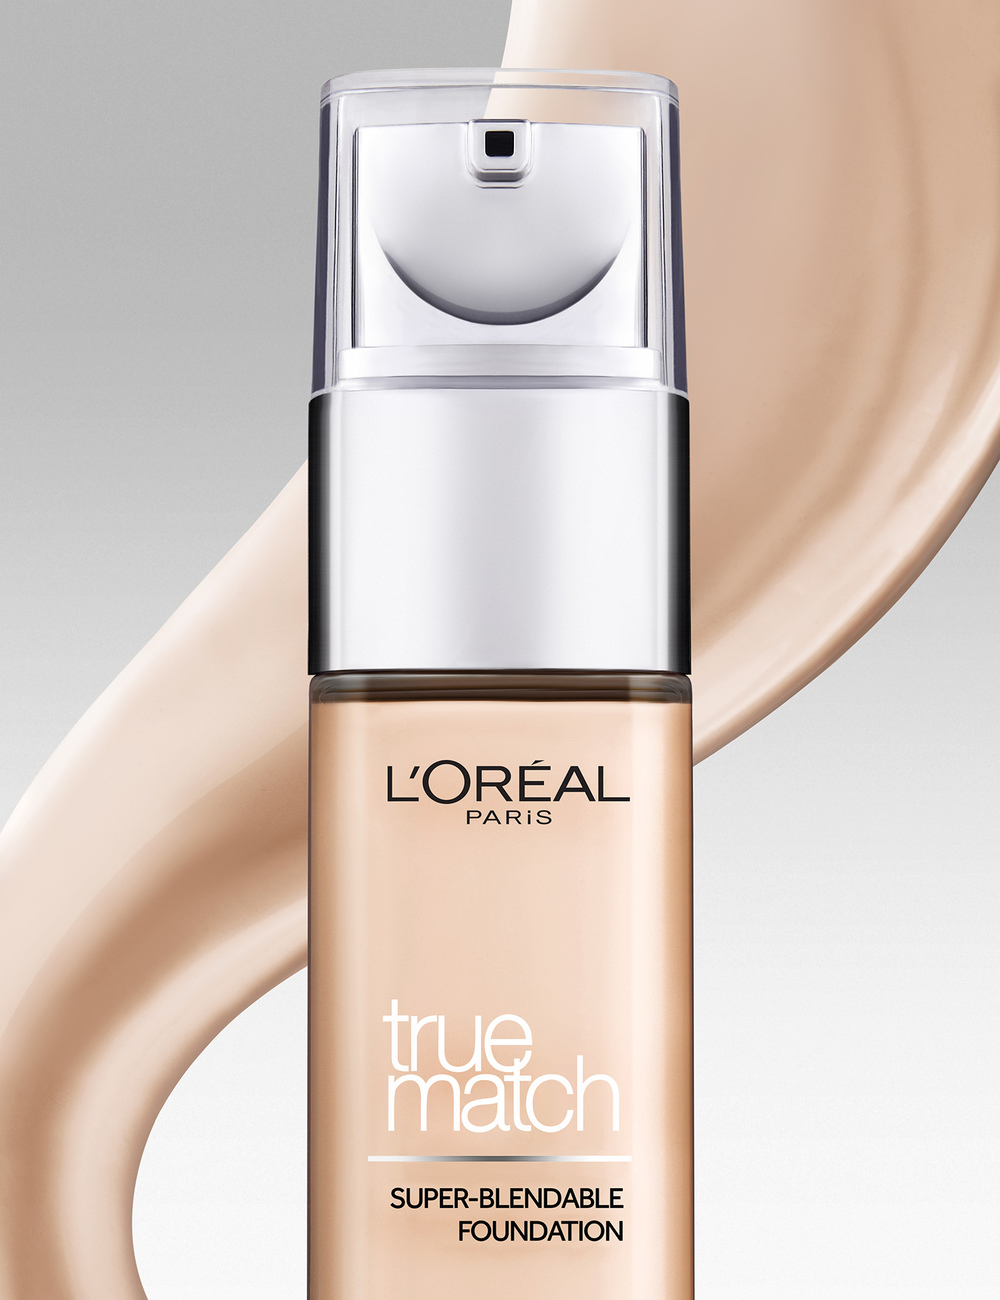 loreal-foundation-make-up-true-match-cosmetics-photography-still-life-commercial-2.jpg